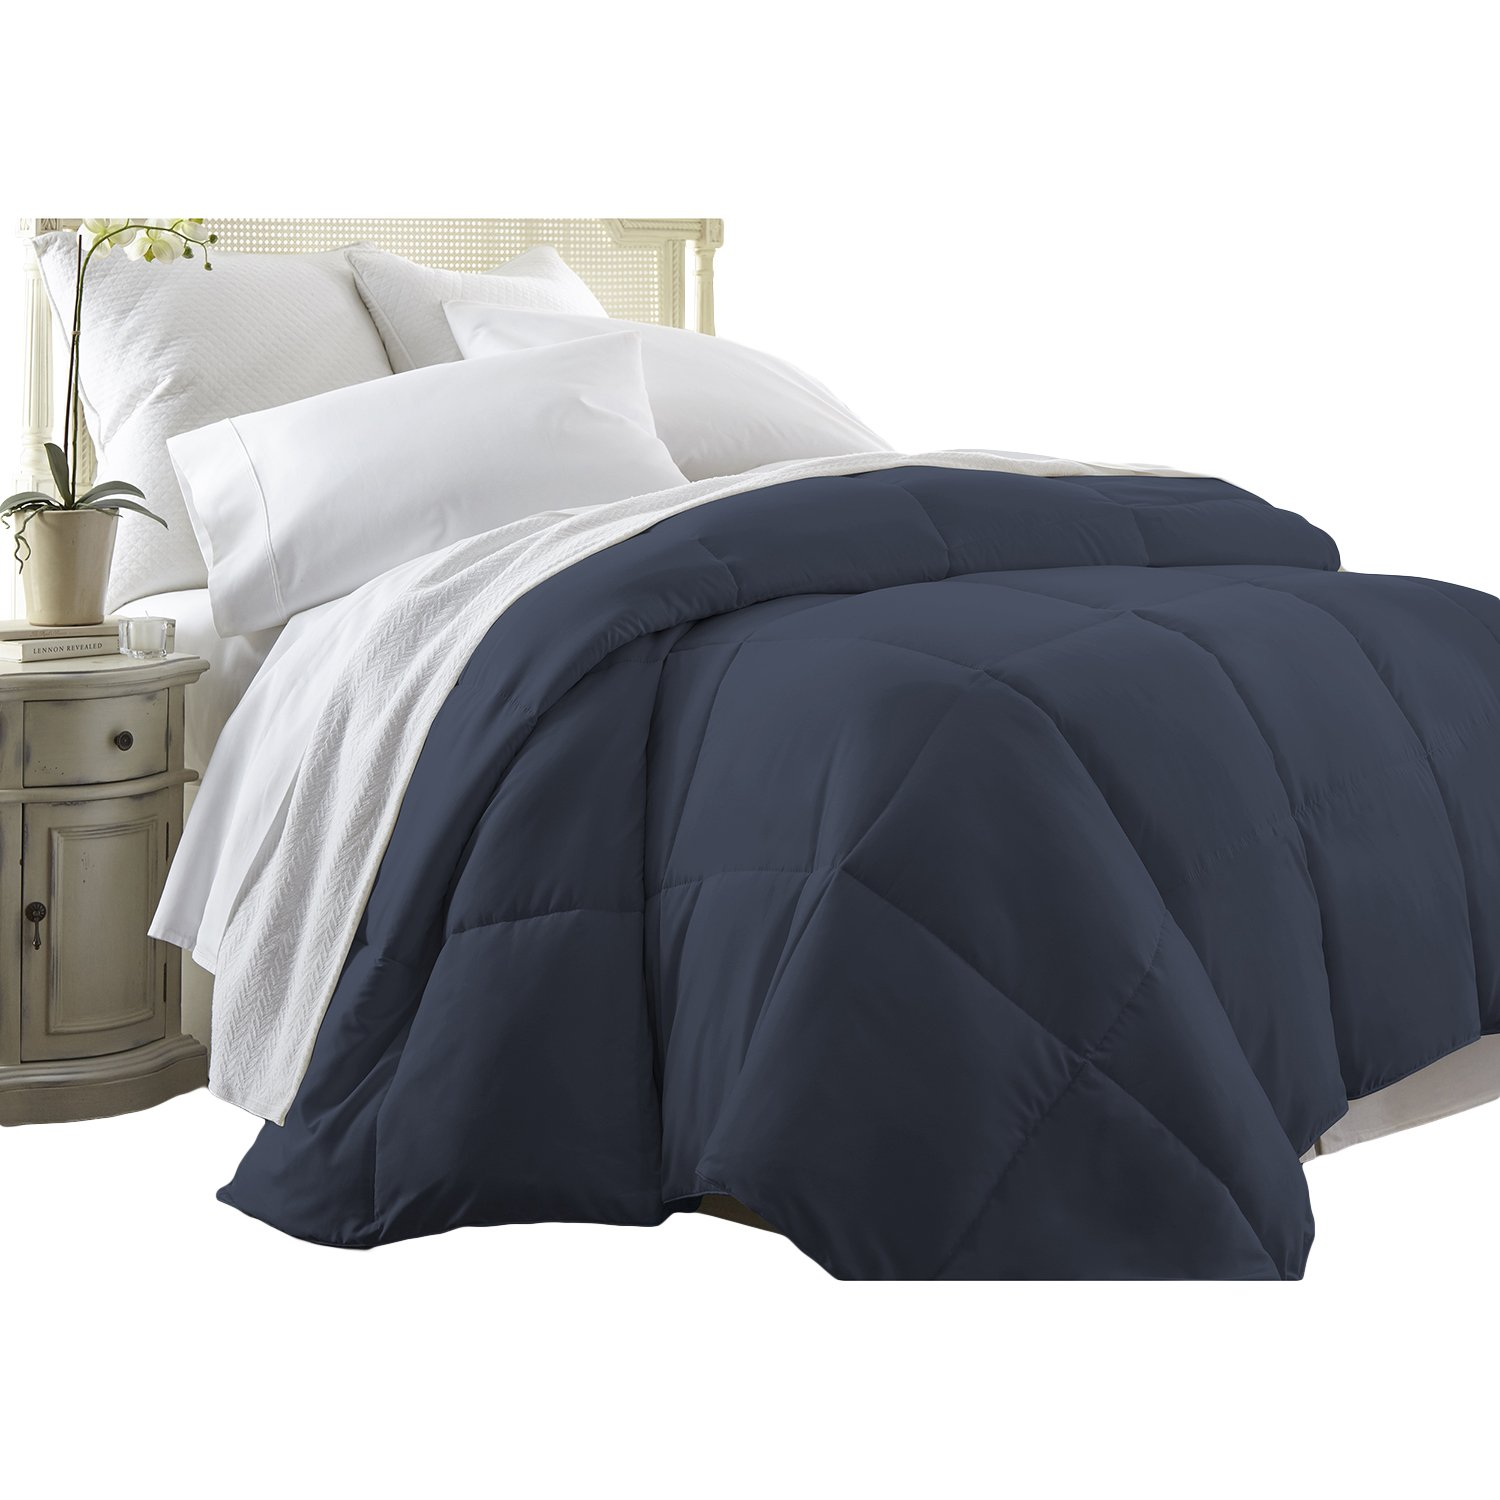 comforter bedroom cheap solid blue taupe plain design canada oversized bedding white luxury attractive dark quilt duvet embossed for your pink duvets decor and california comforters of full with covers set brown single red cover queen size remarkable black microsuede king sets